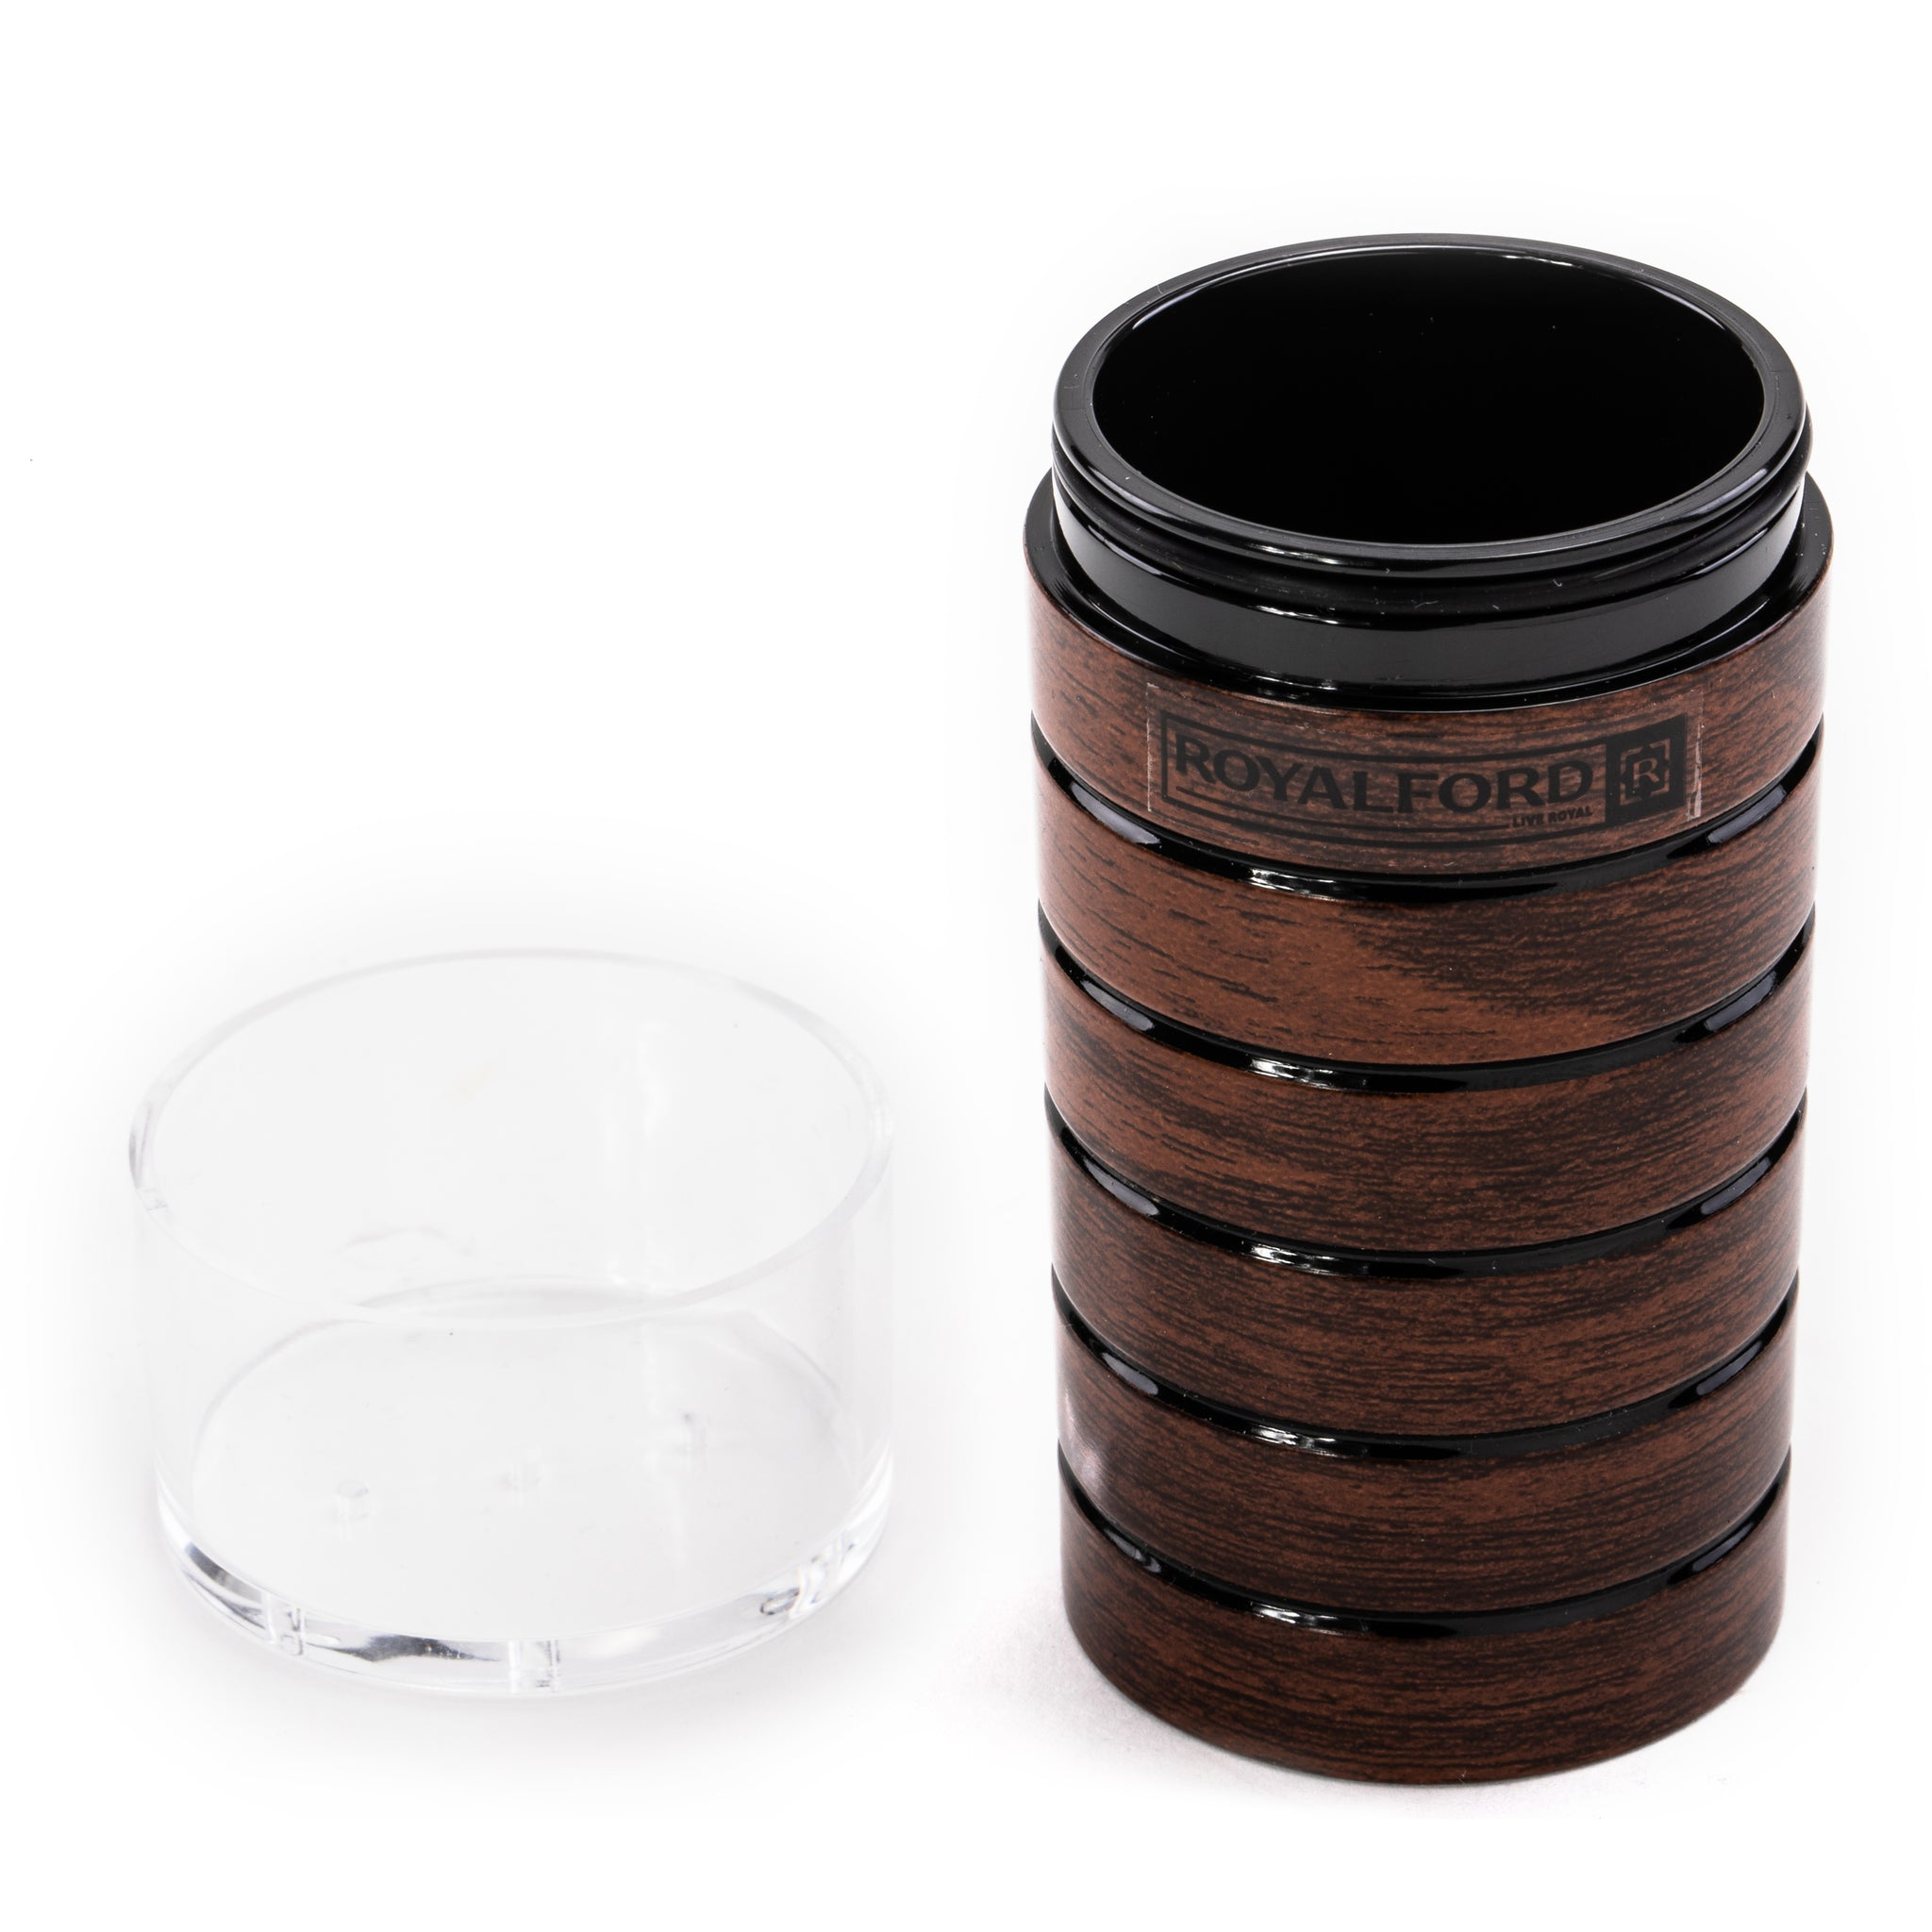 Royalford Cherry Wood Acrylic Pepper Bottle 70ml, Lightweight Pepper Mill